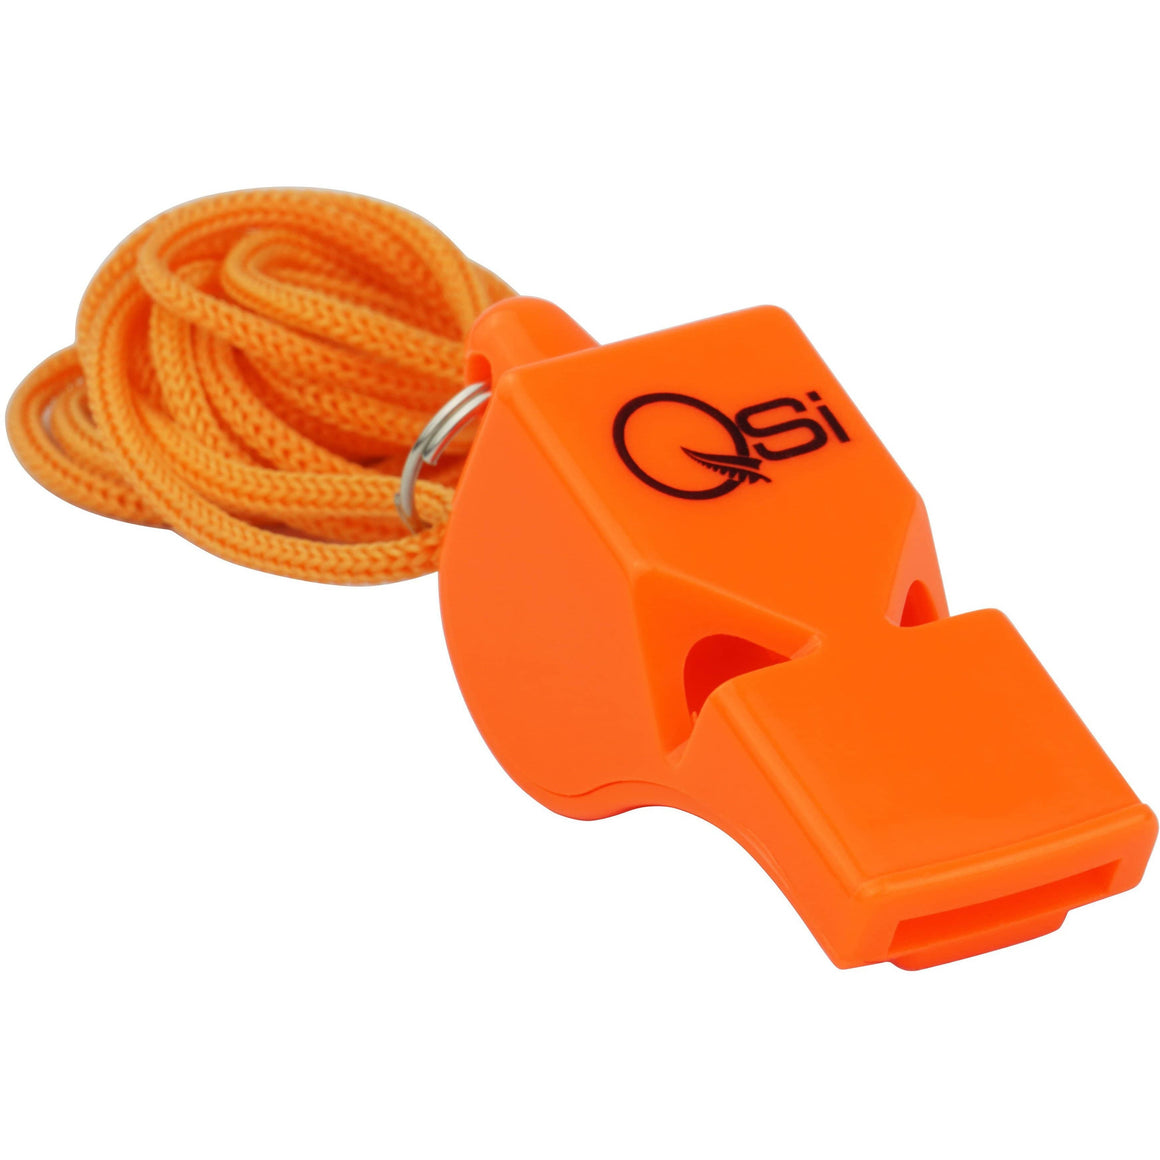 Survival Whistle - High Decibel Performance Pealess Whistle